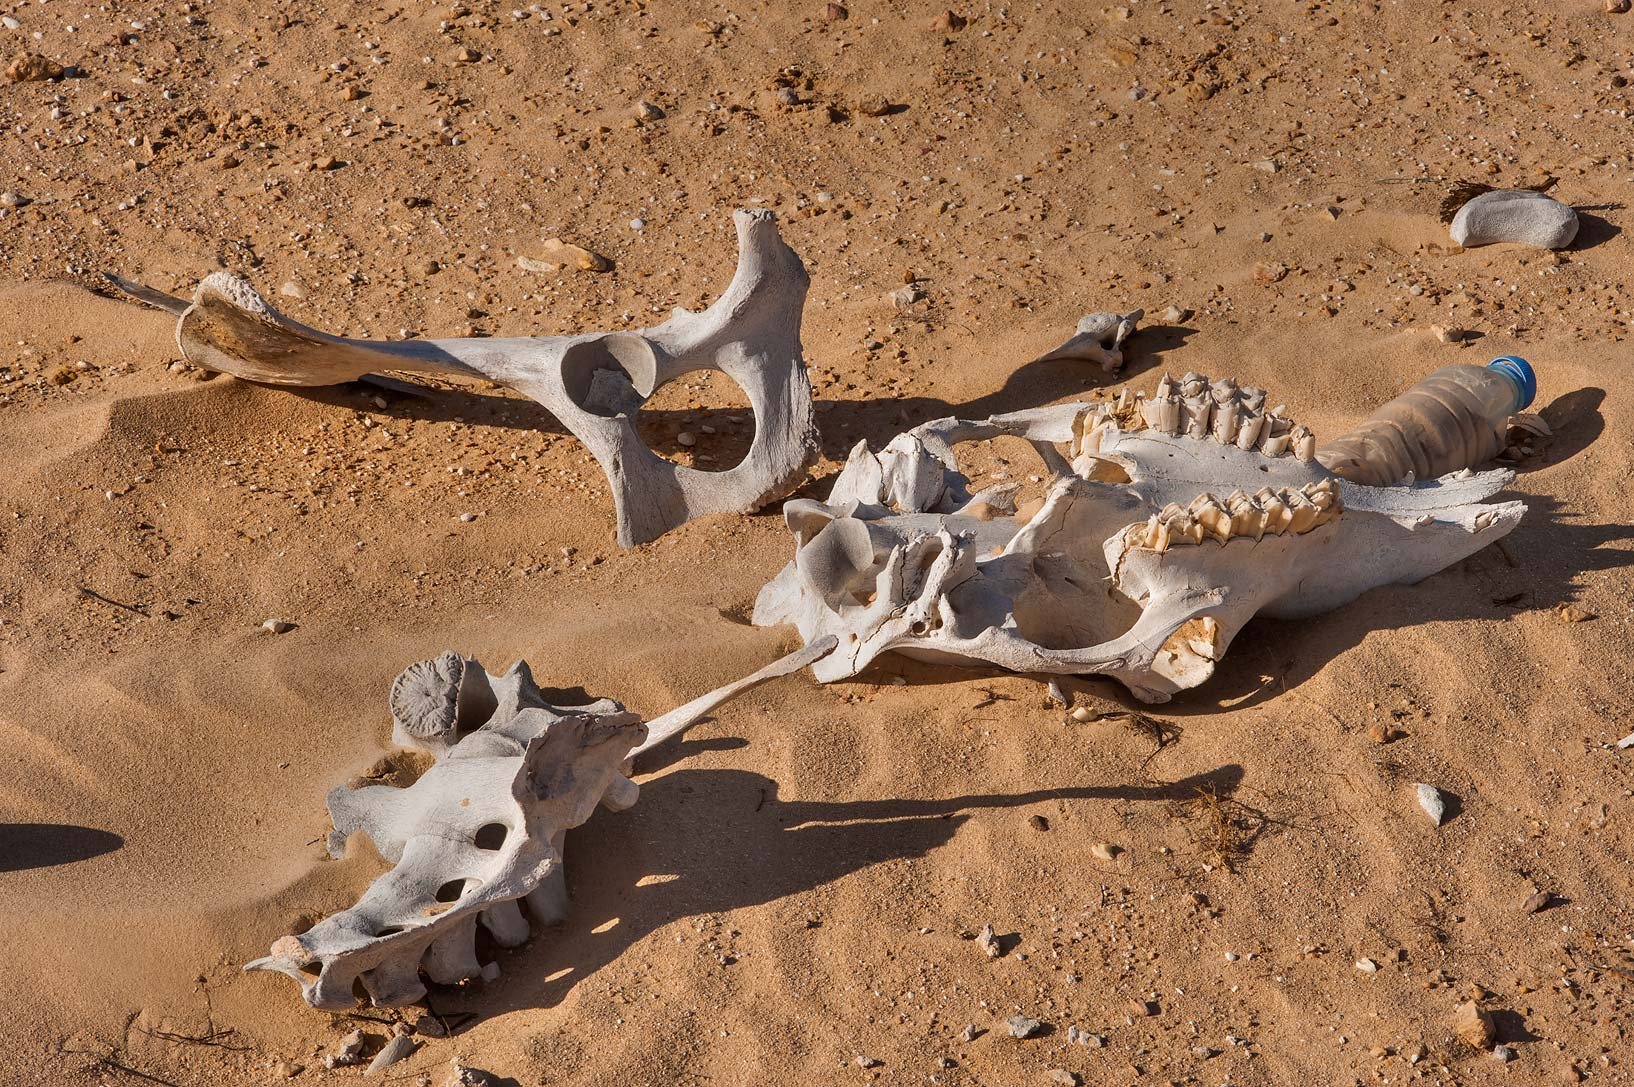 Camel bones in sand between Al Khor and Ras Luffan. Qatar